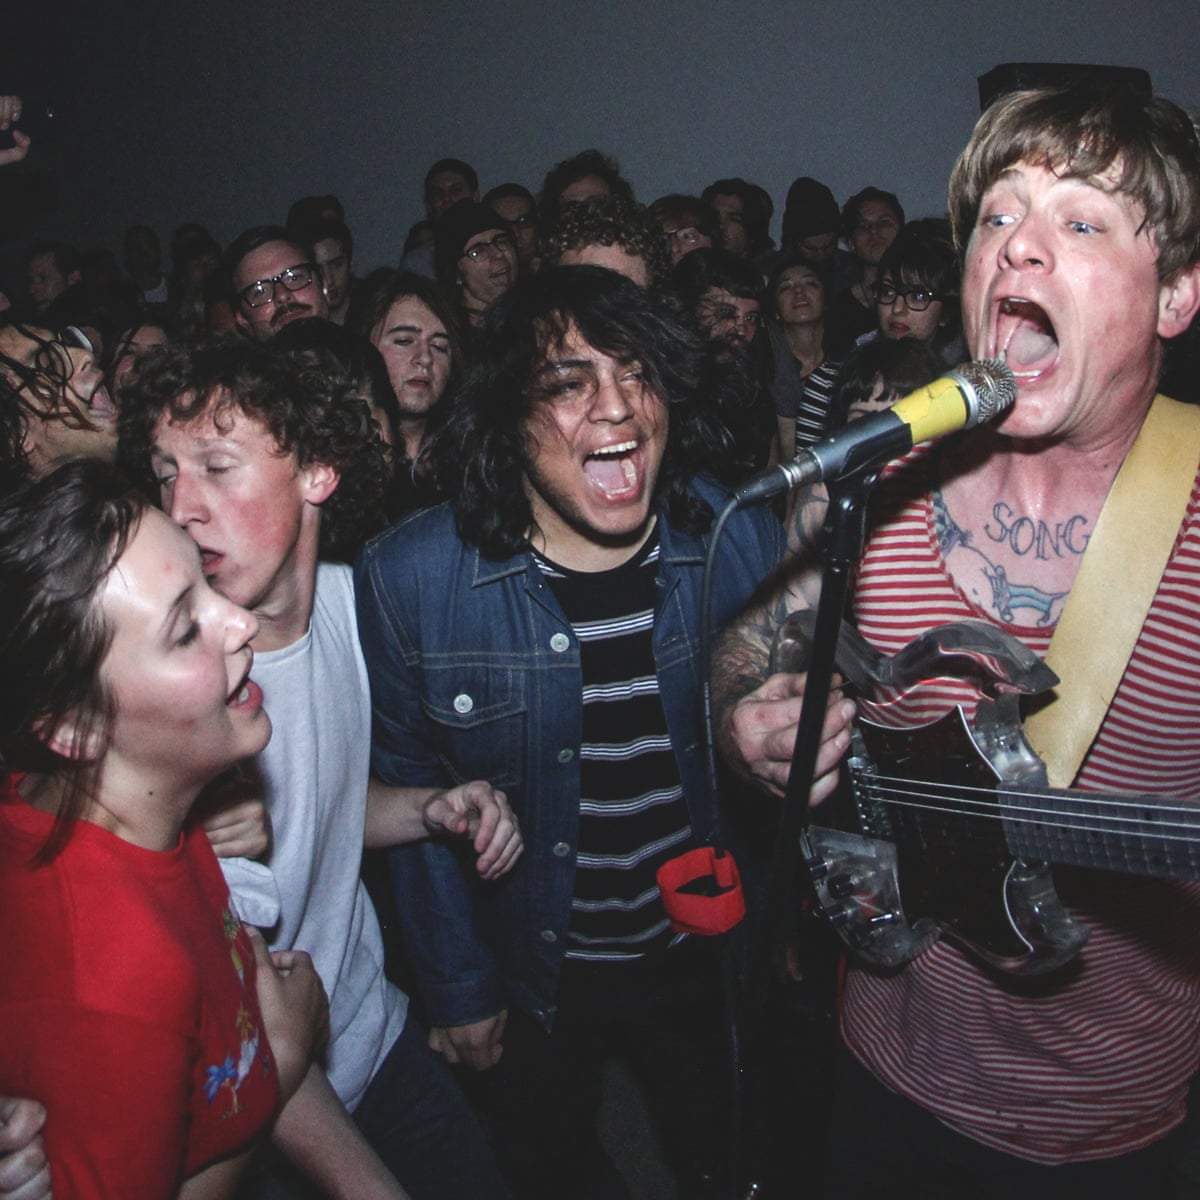 Leather daddies and jazz: a beginner's guide to garage-rock hero John Dwyer | Music | The Guardian